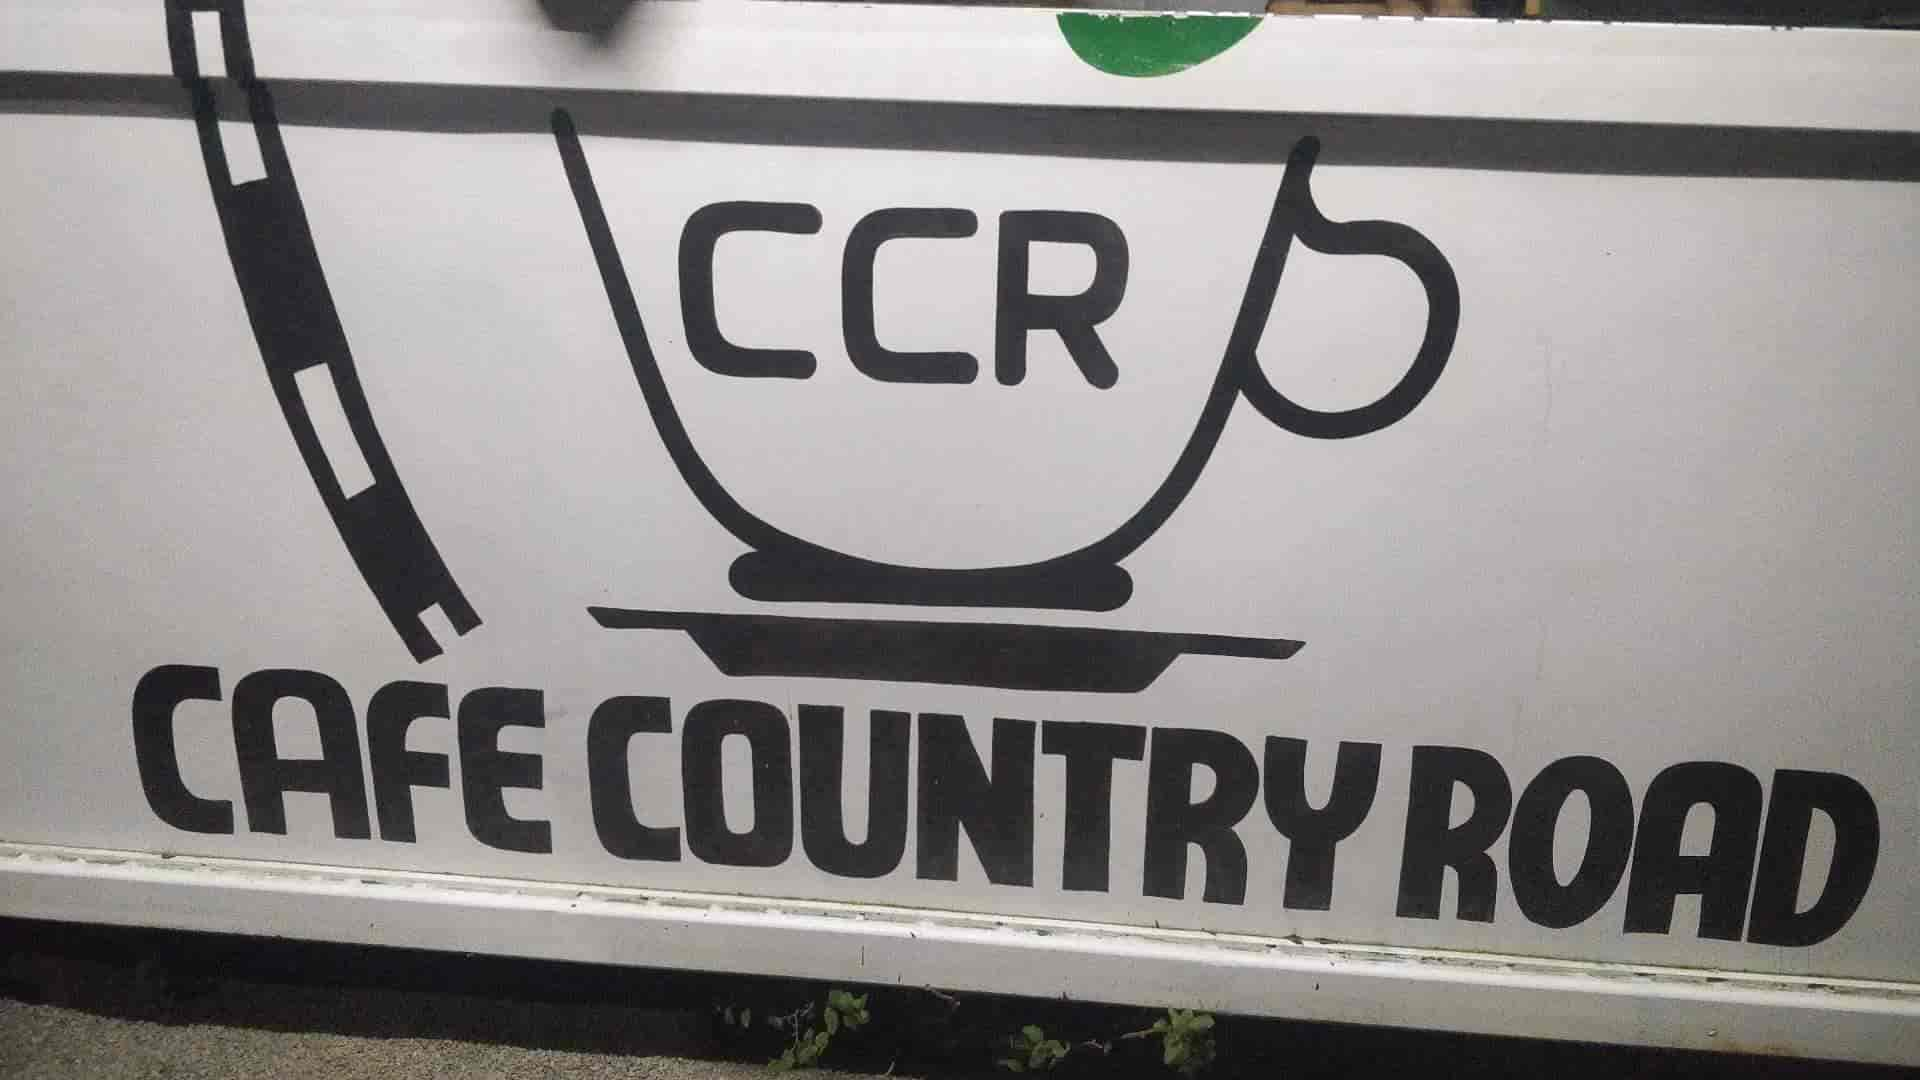 Cafe Country Road, Udaipur City, Udaipur-Rajasthan - Coffee Shops